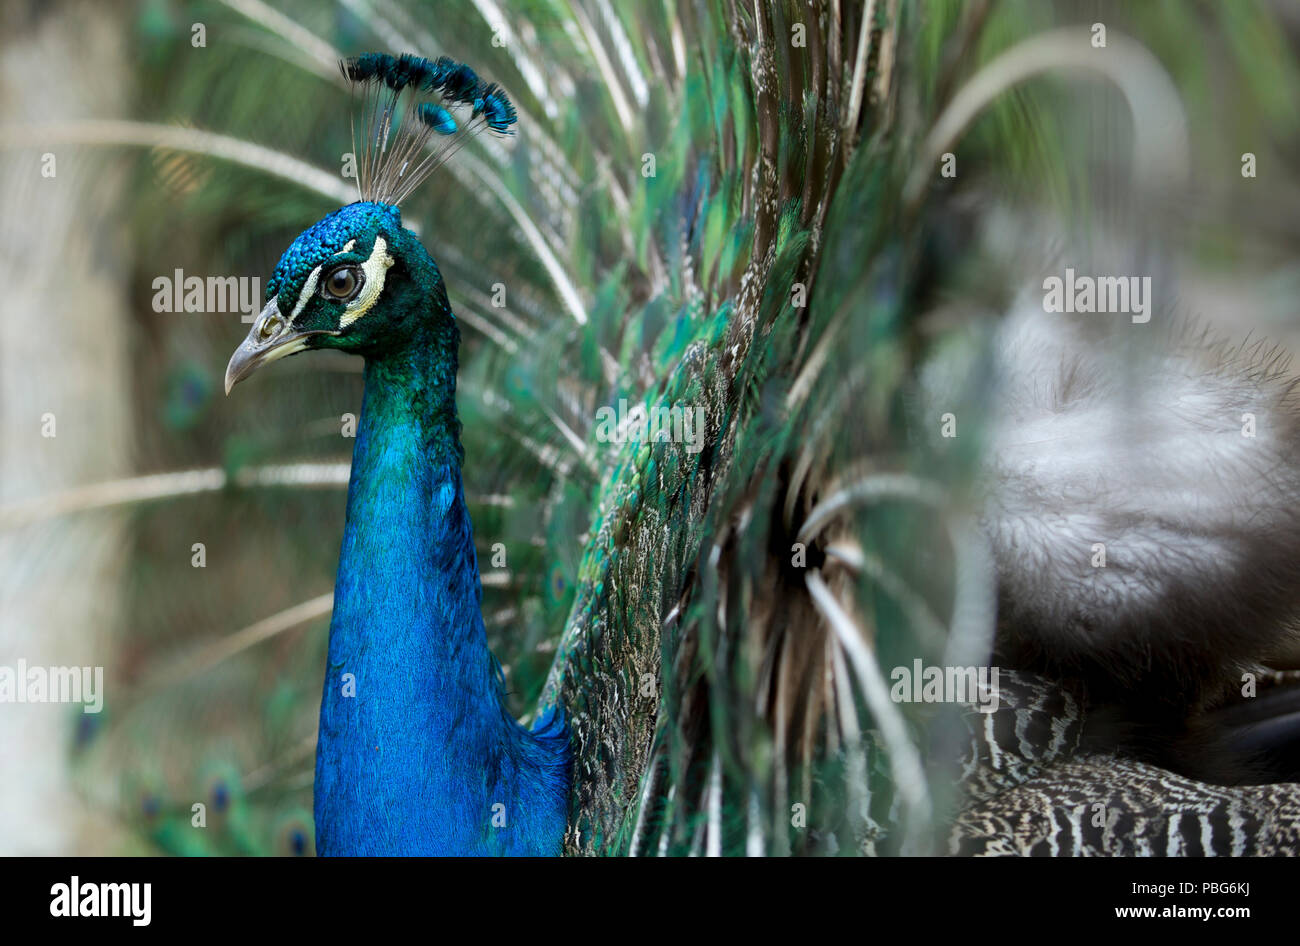 Peacock, Colombia - Stock Image